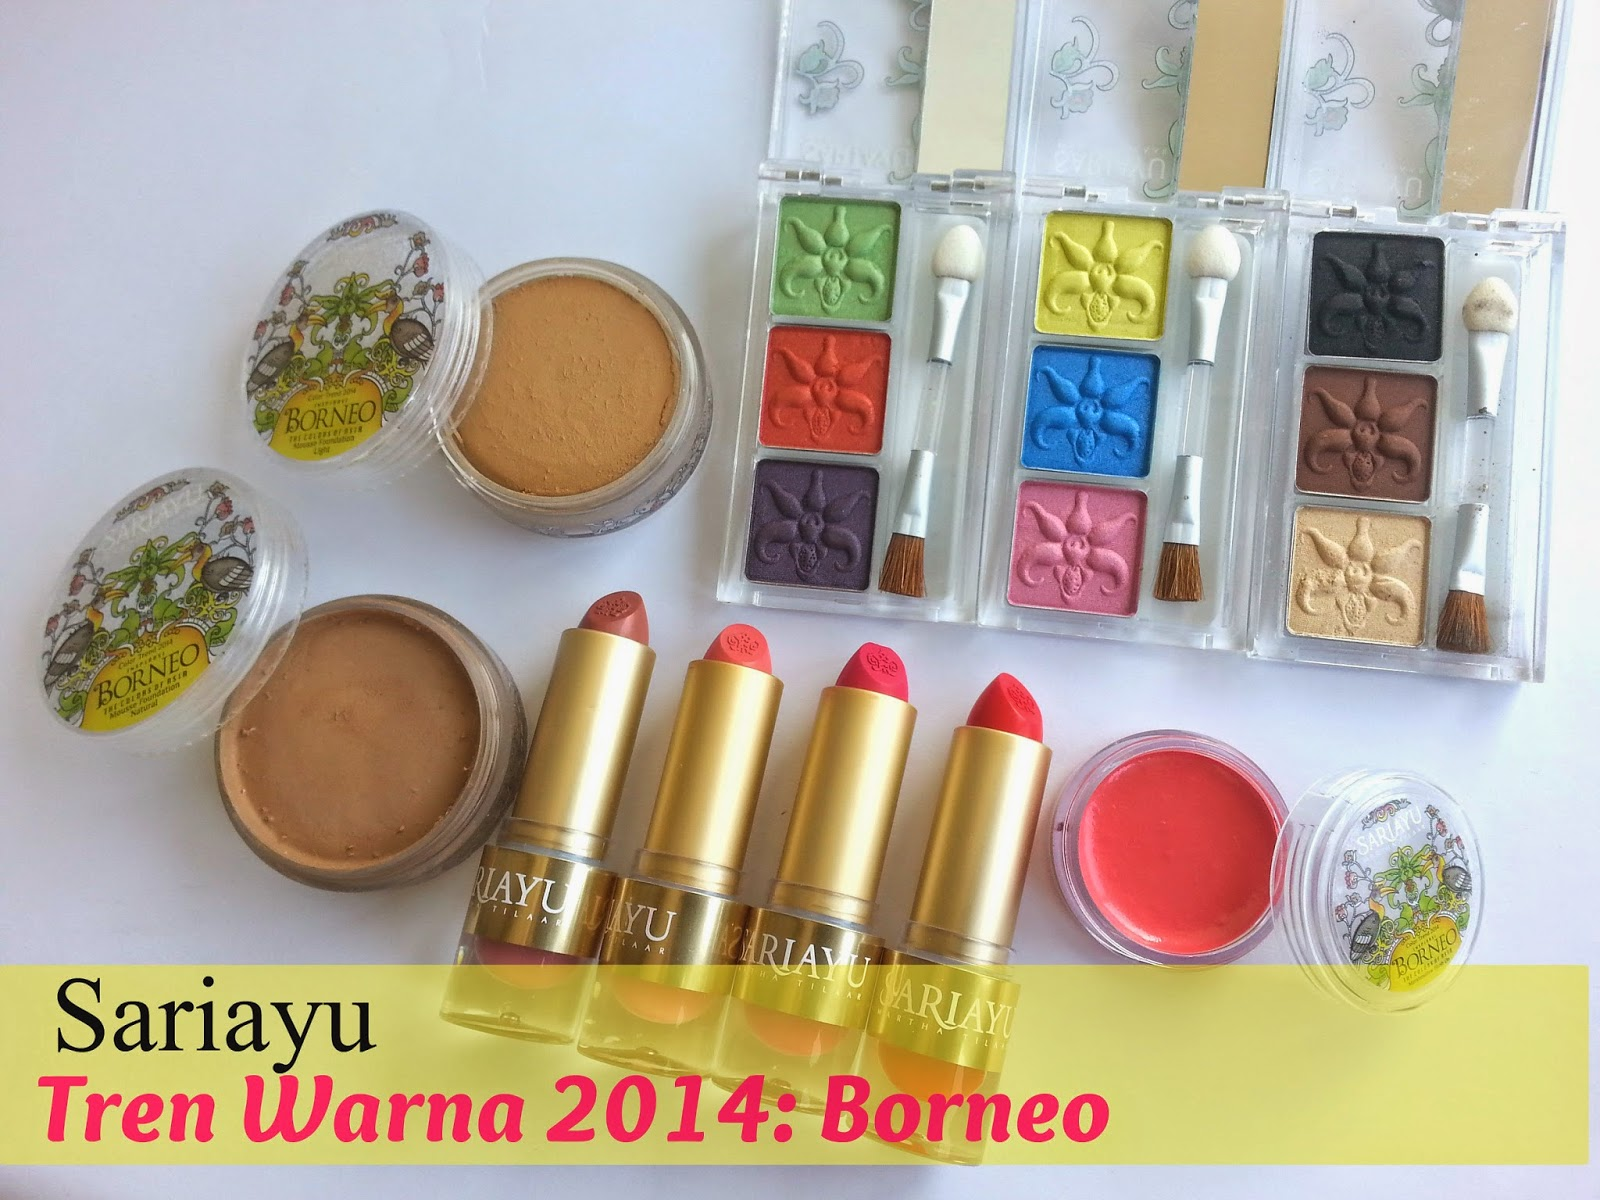 Sariayu: Tren Warna 2014 Borneo Review - A Chick With Lipstick